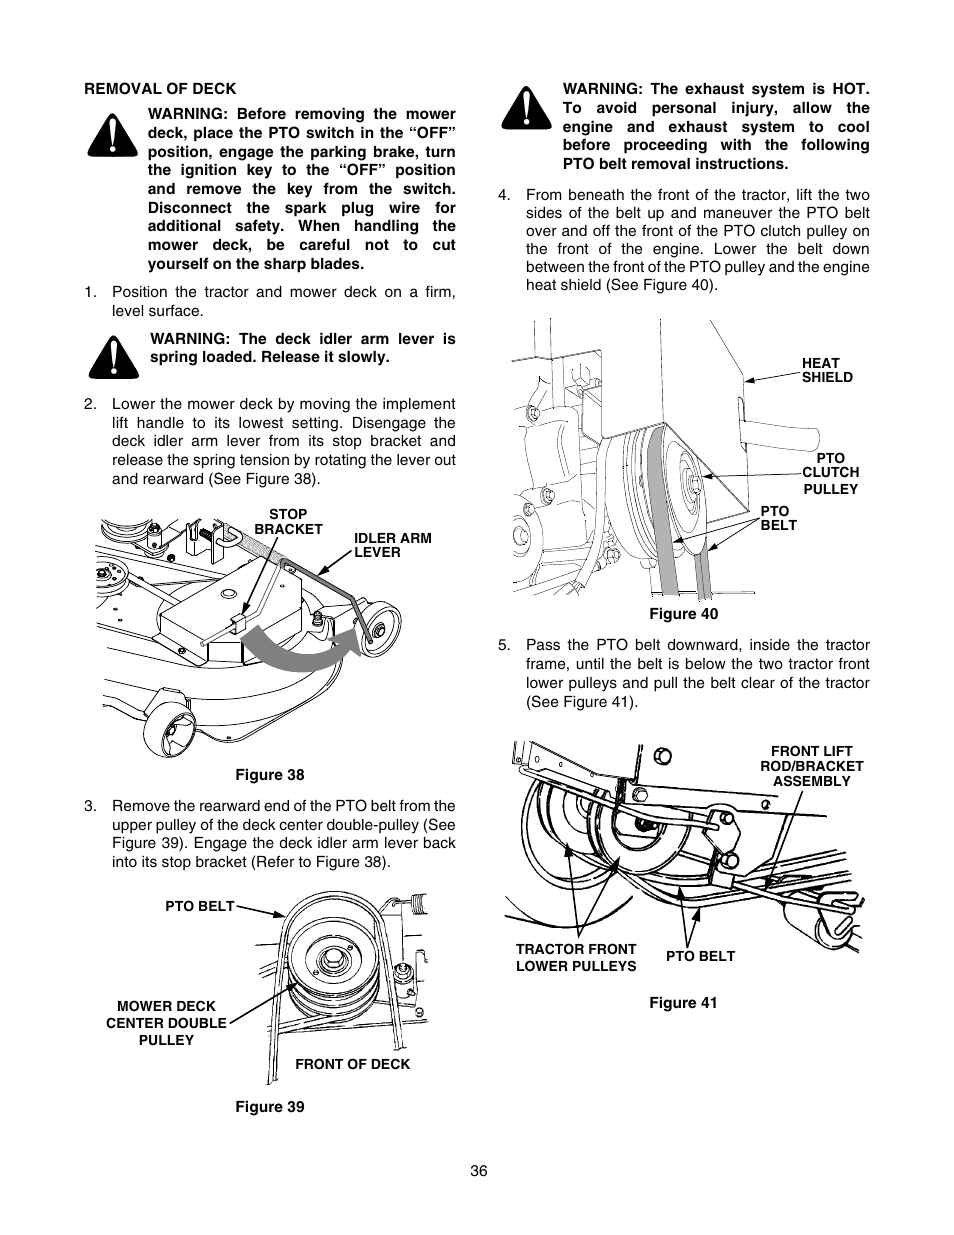 medium resolution of cub cadet gt 2550 user manual page 36 56 honeywell rth2300 rth221 thermostat wiring diagram